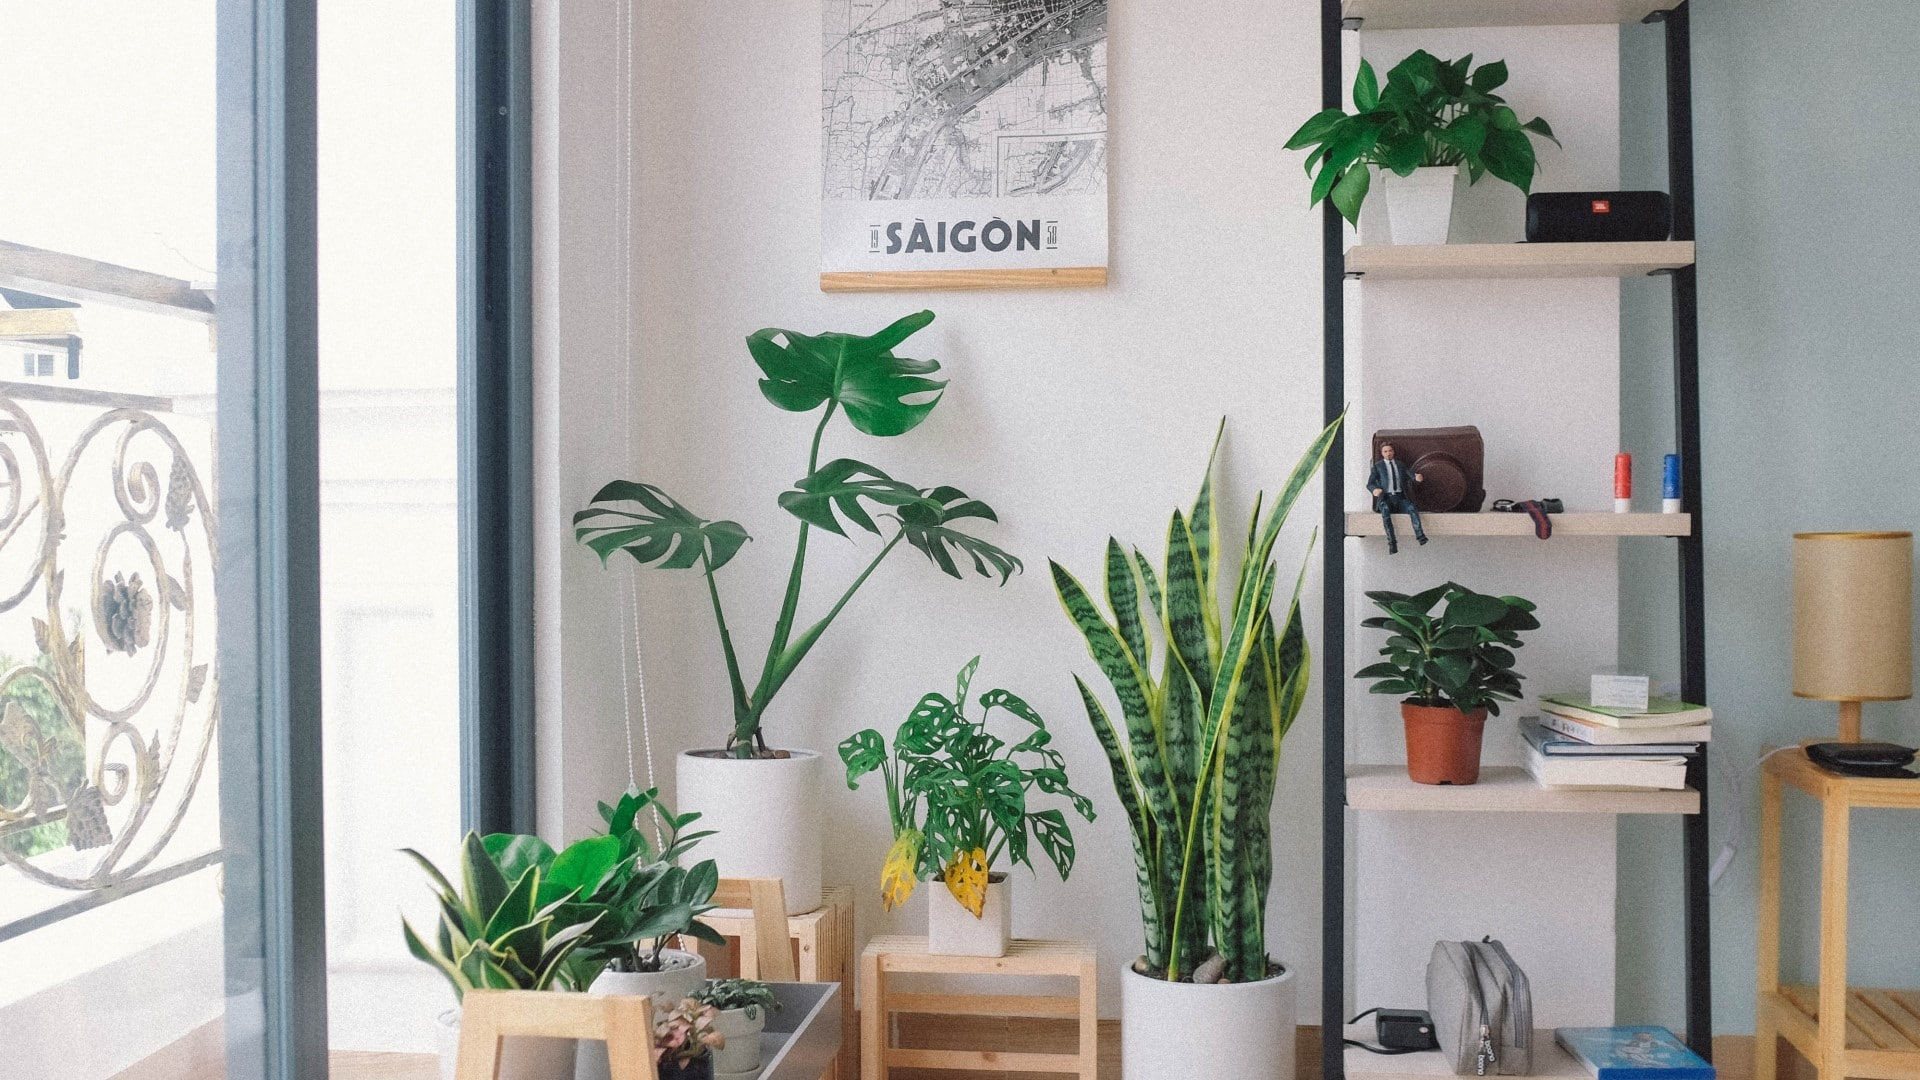 Bring some calm and greenery into your home with these houseplants